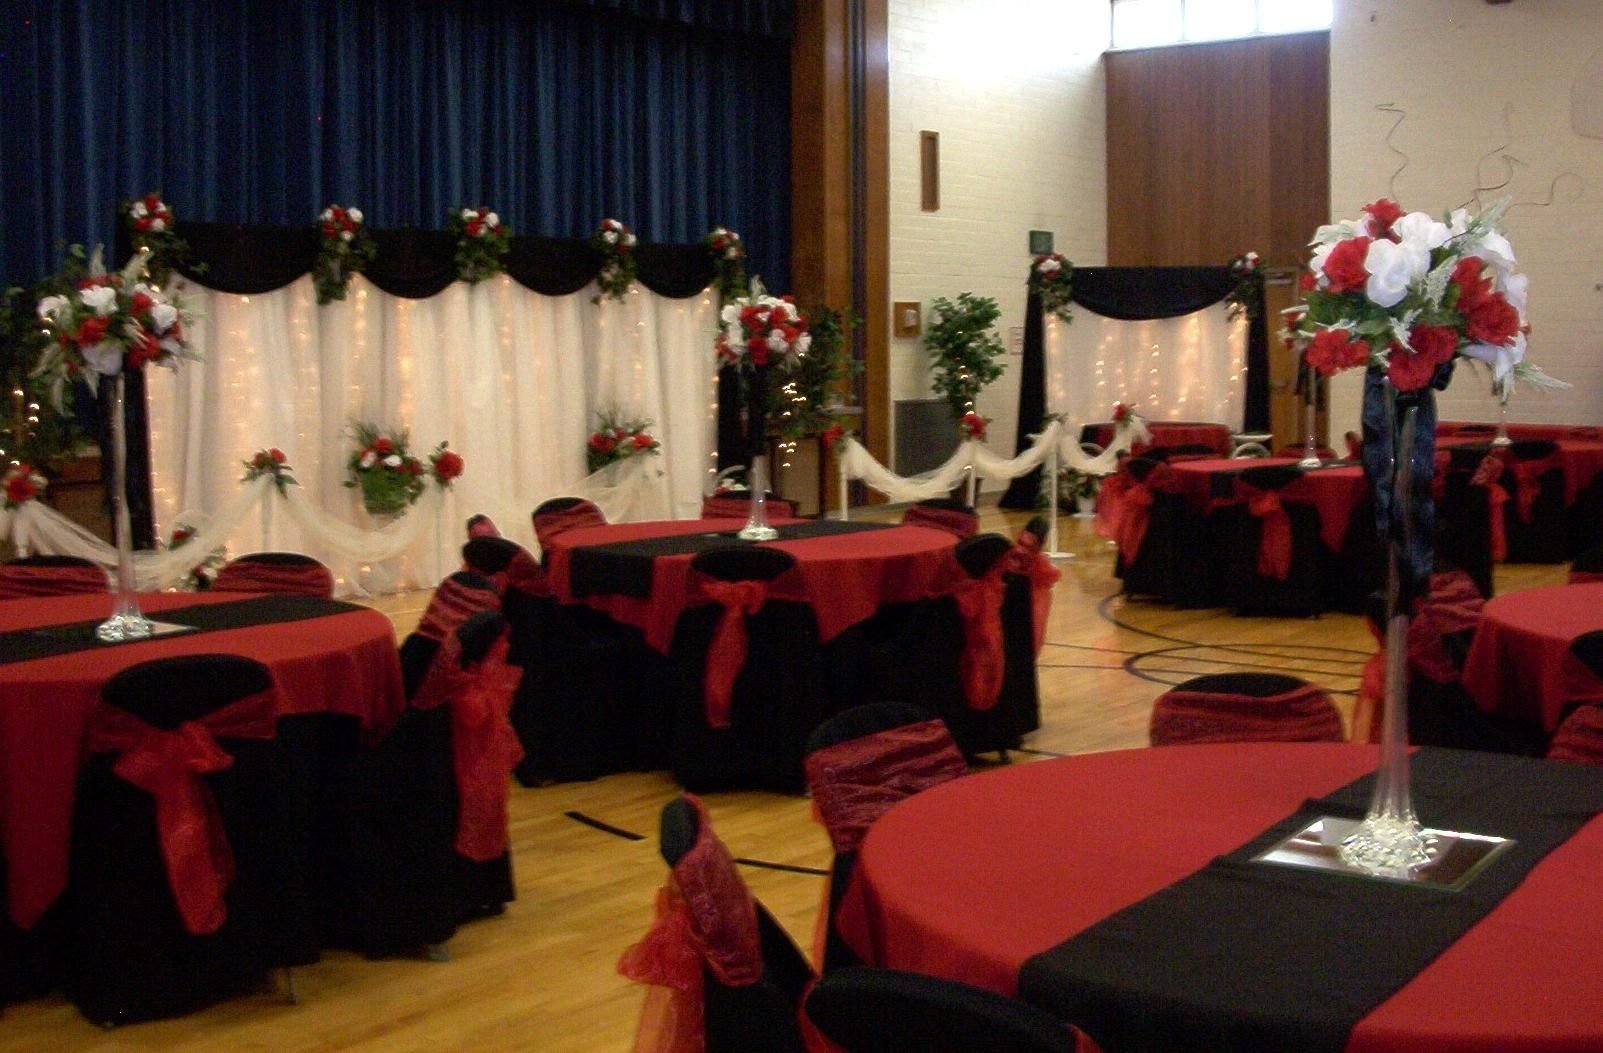 10 Stunning Black And Red Wedding Ideas black white red gold reception decorations october 9th 2009 1 2020